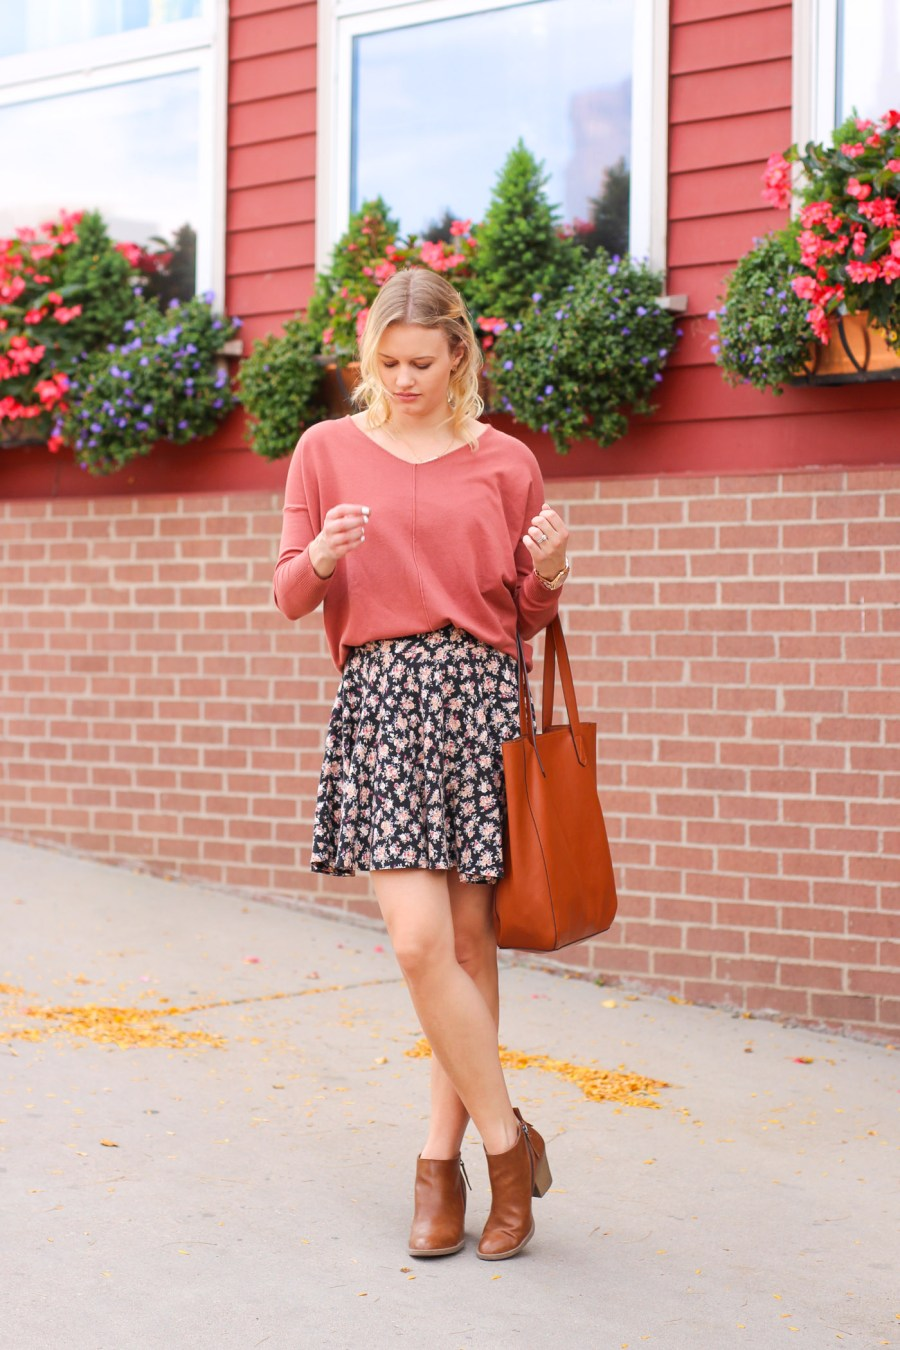 floral skirt, fall outfit, fashion blog, fall booties, women's fashion, Pinterest outfit, golden, colorado